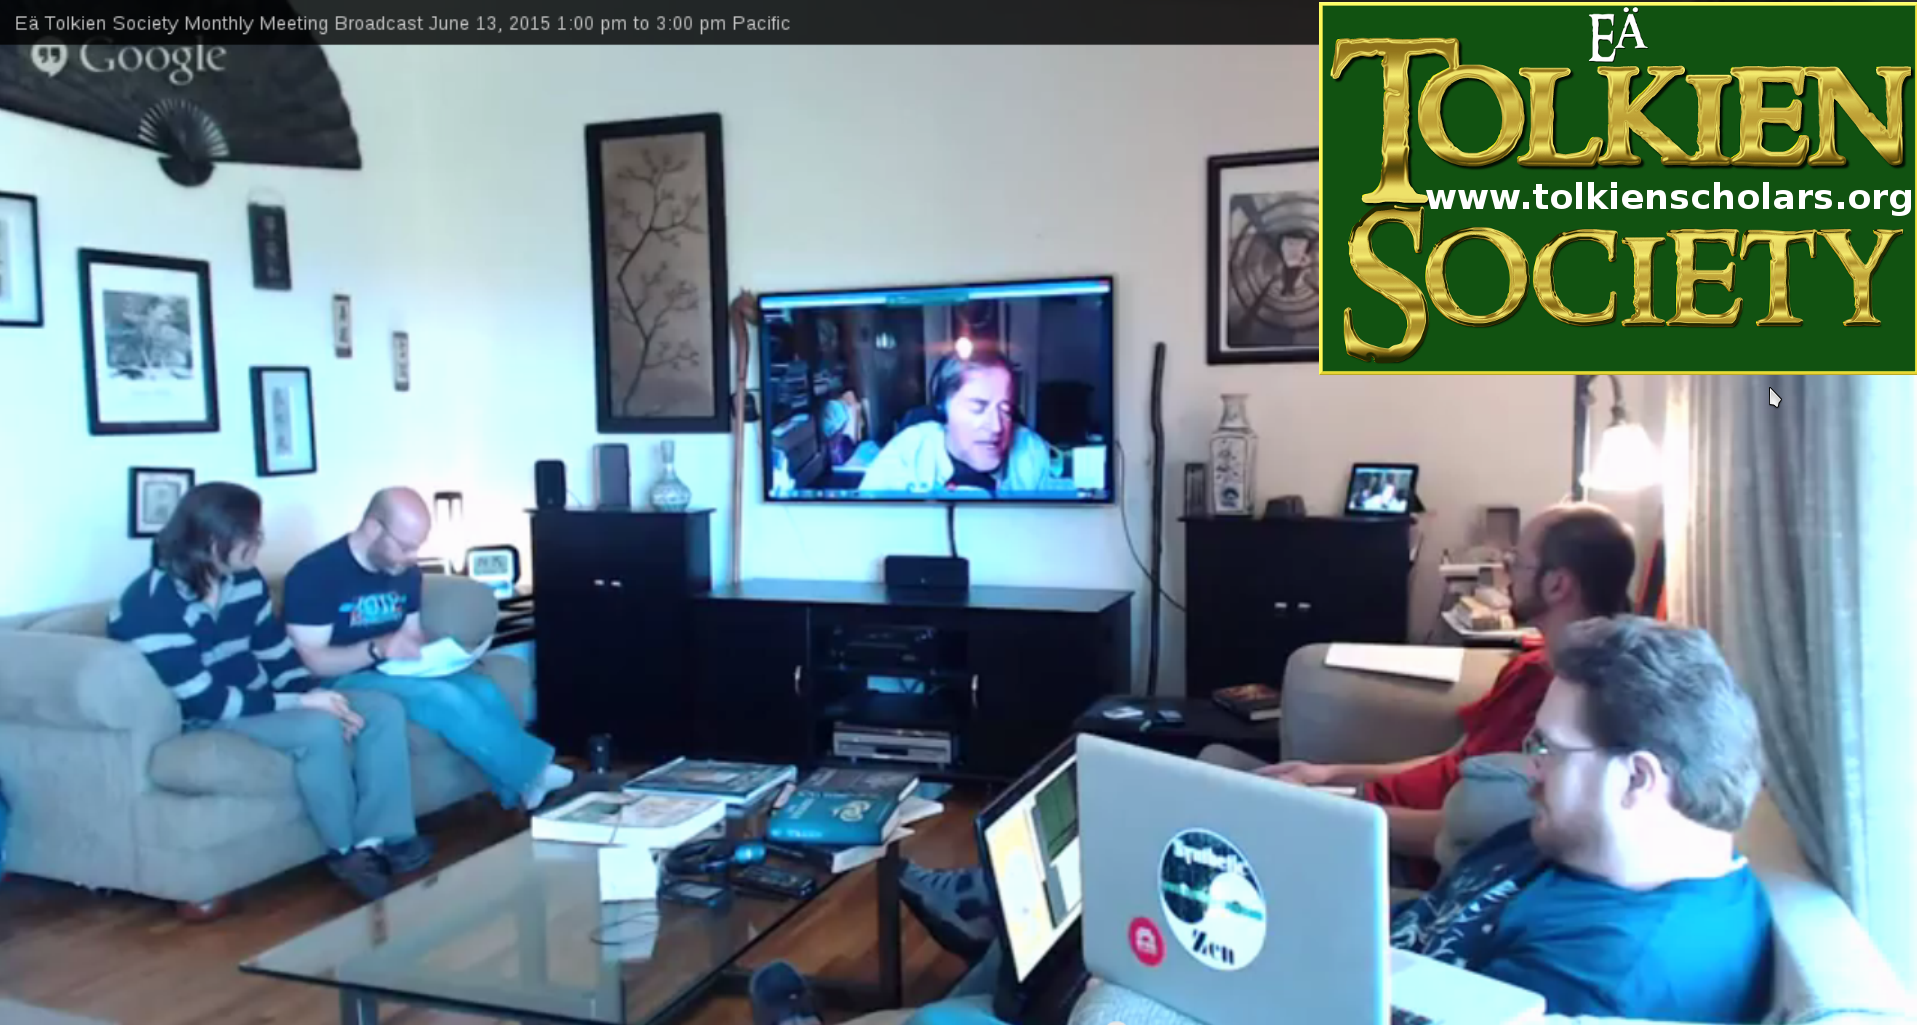 Eä Tolkien Society Monthly Meeting Notes, May 2016